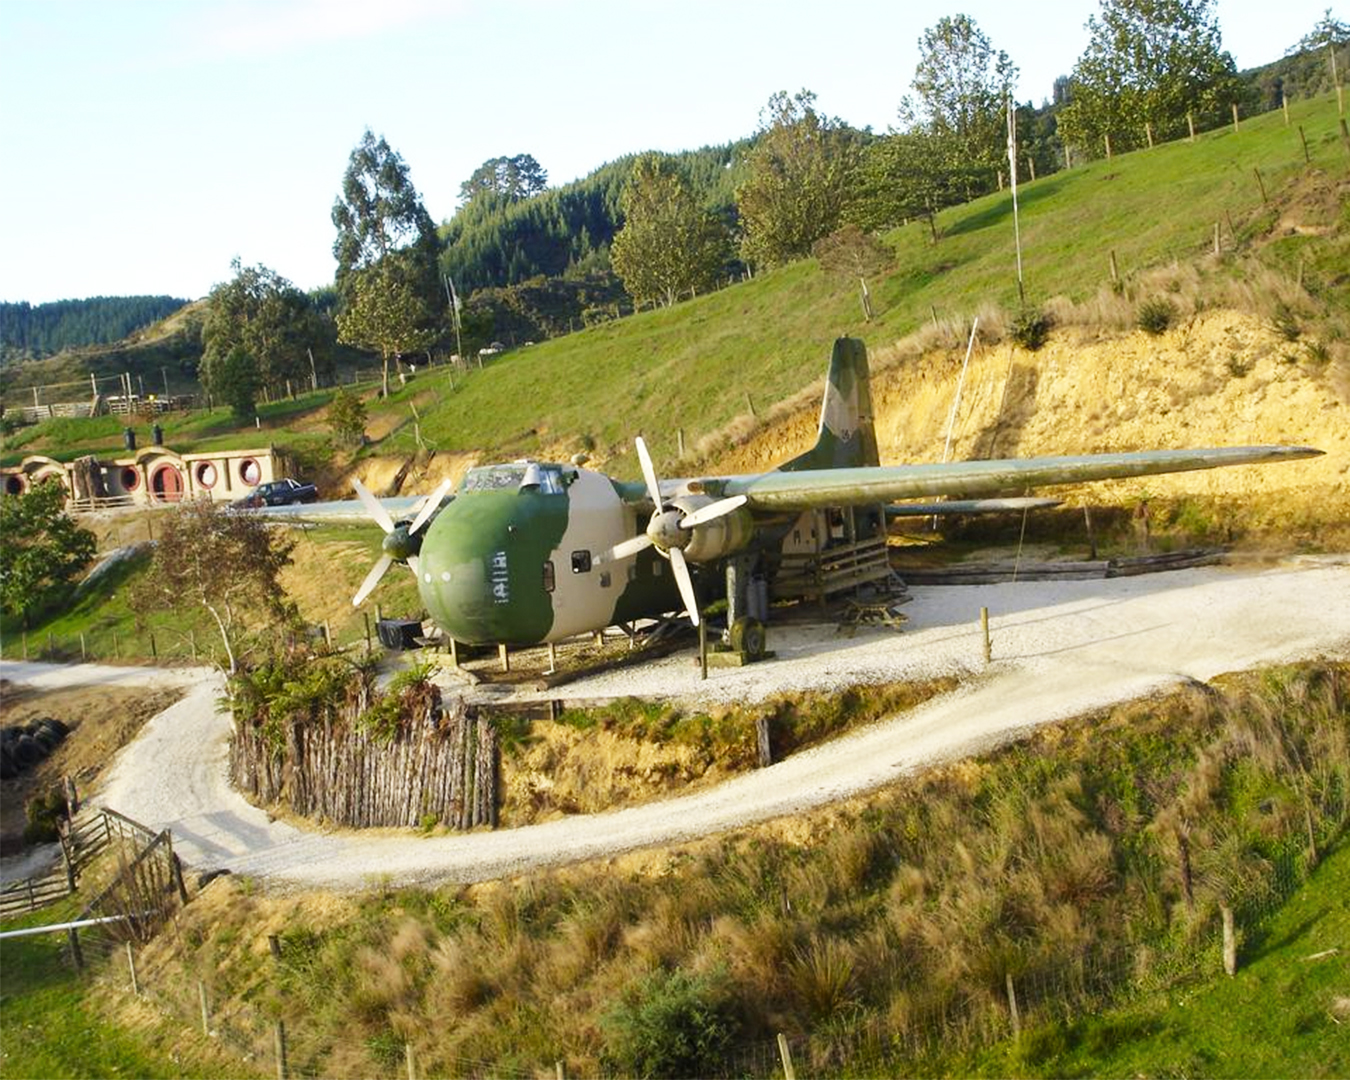 A war plane with a hobbit house in the background.